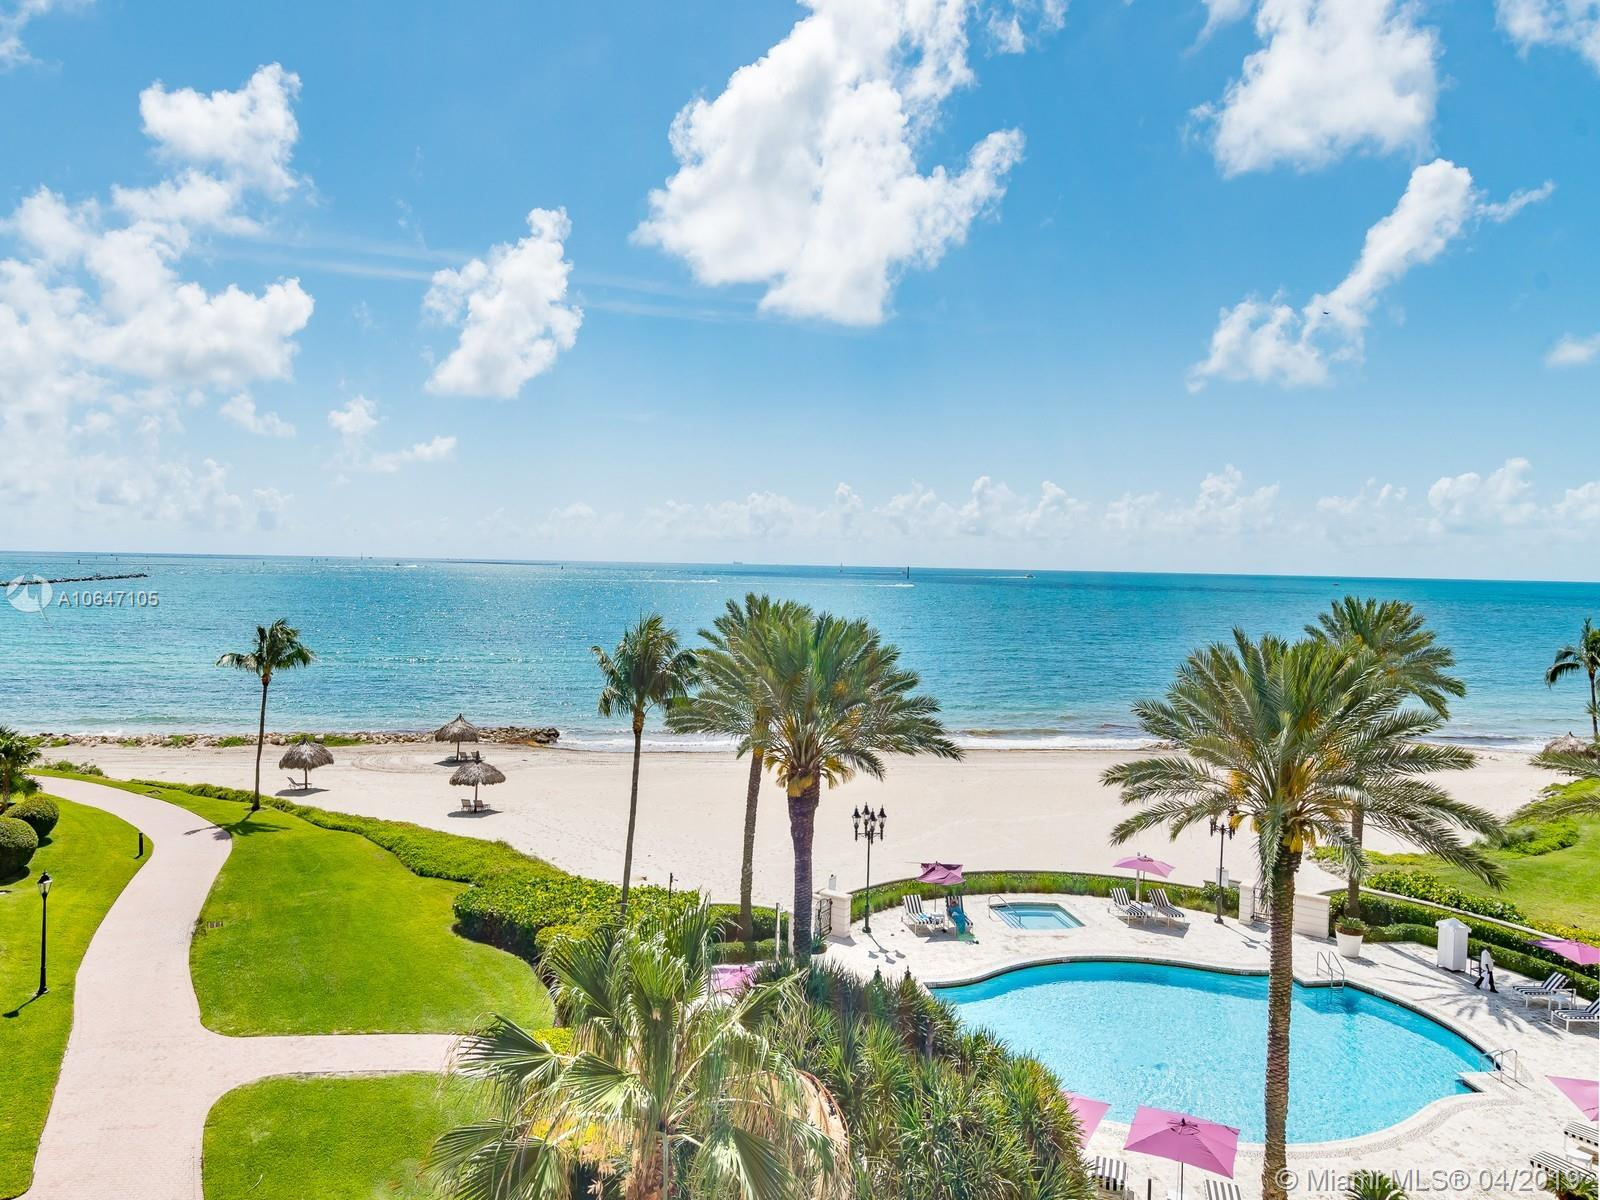 7641  Fisher Island Dr #7641 For Sale A10647105, FL